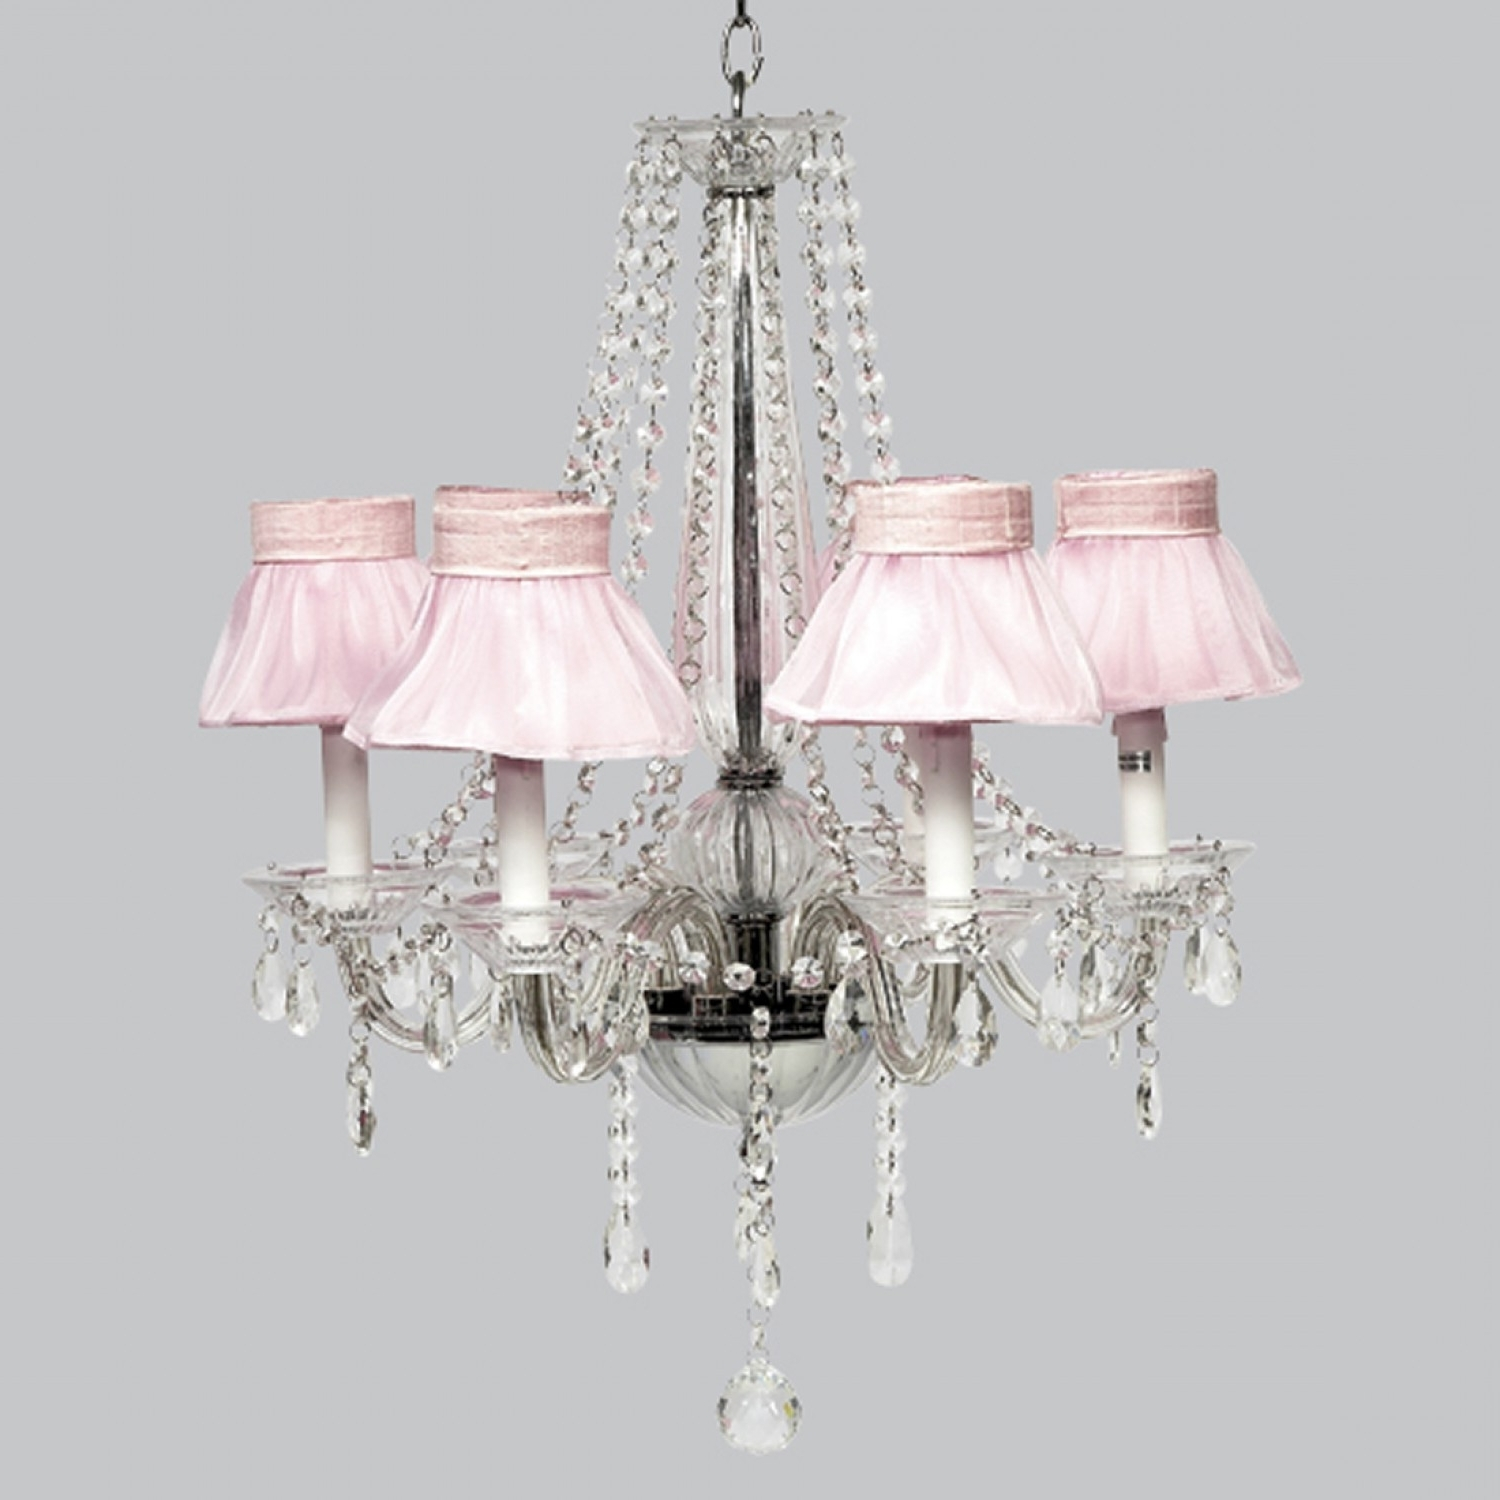 Most Current Chandeliers : Chandelier Lamp Fresh Pablo Bel Occhio 3 Pendant Inside Lampshade Chandeliers (View 11 of 20)